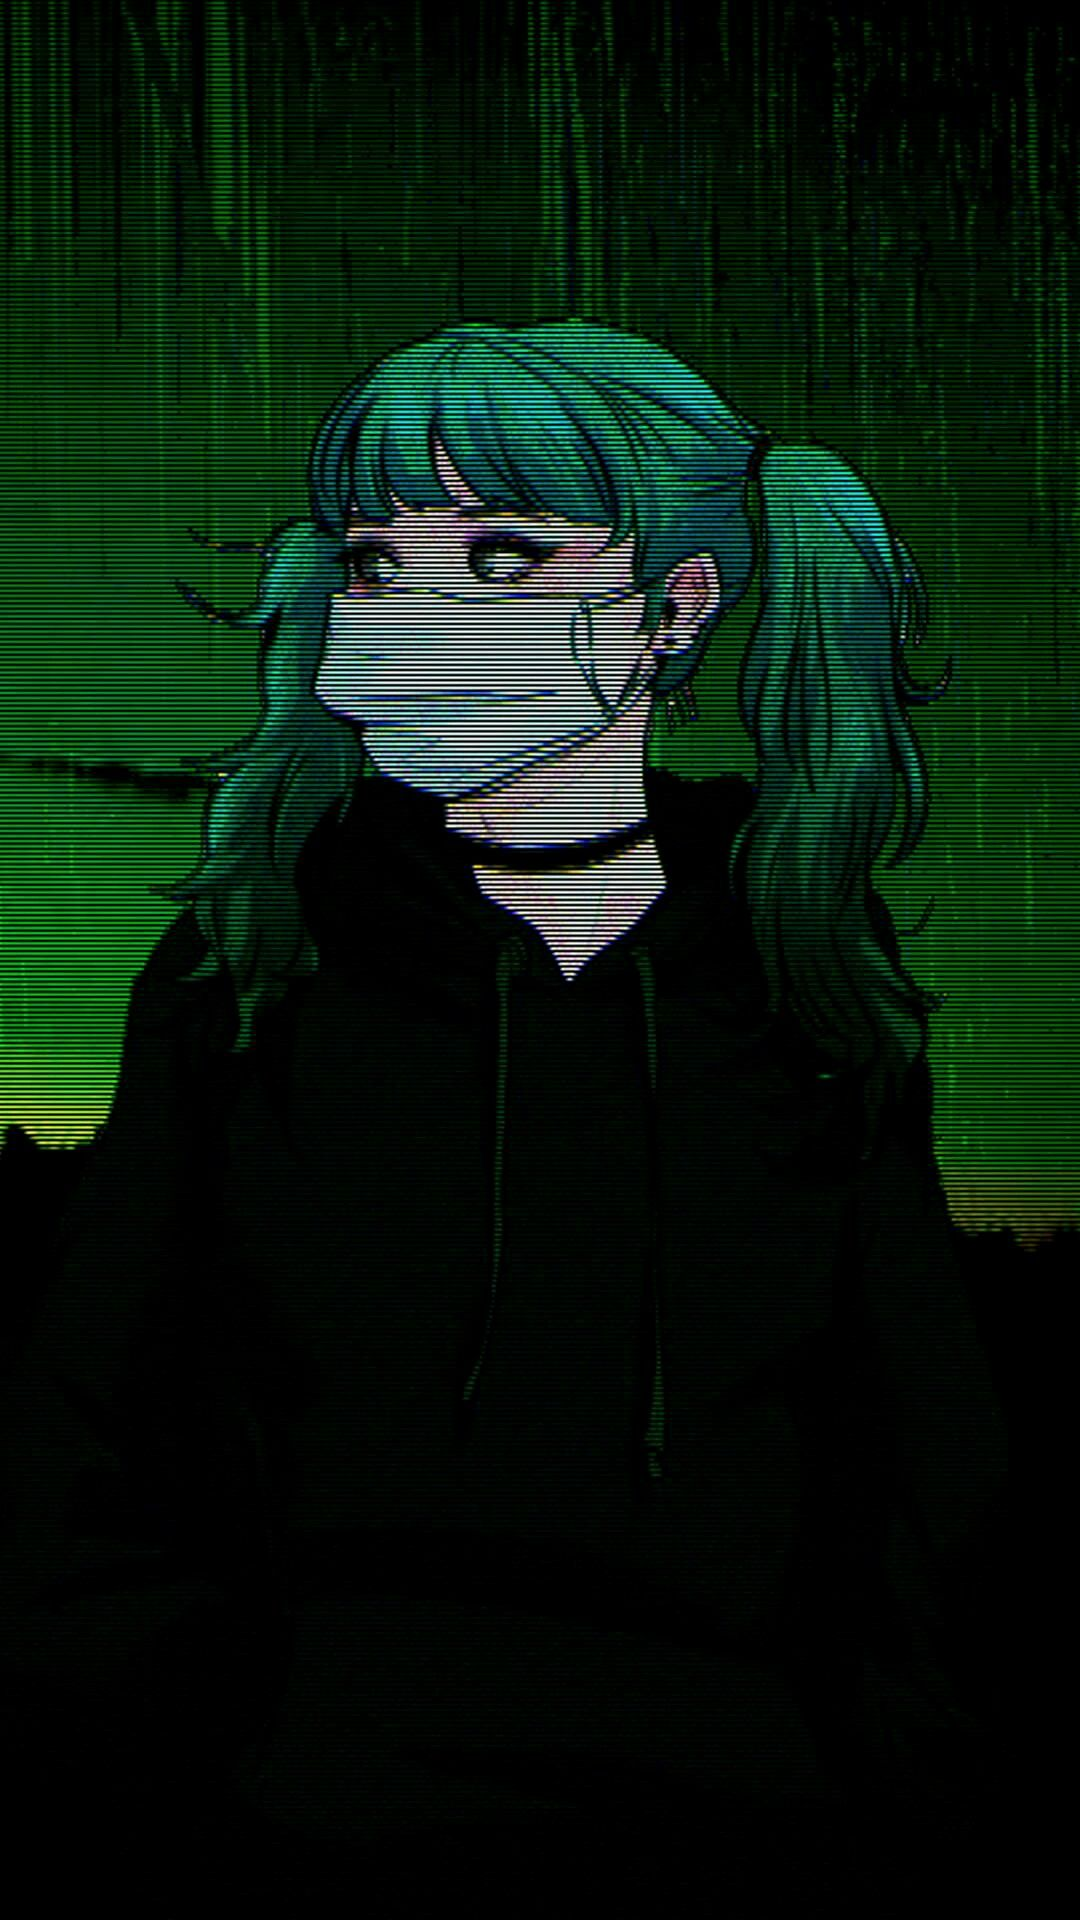 Pin by Tea on Wallpapers Aesthetic anime, Aesthetic